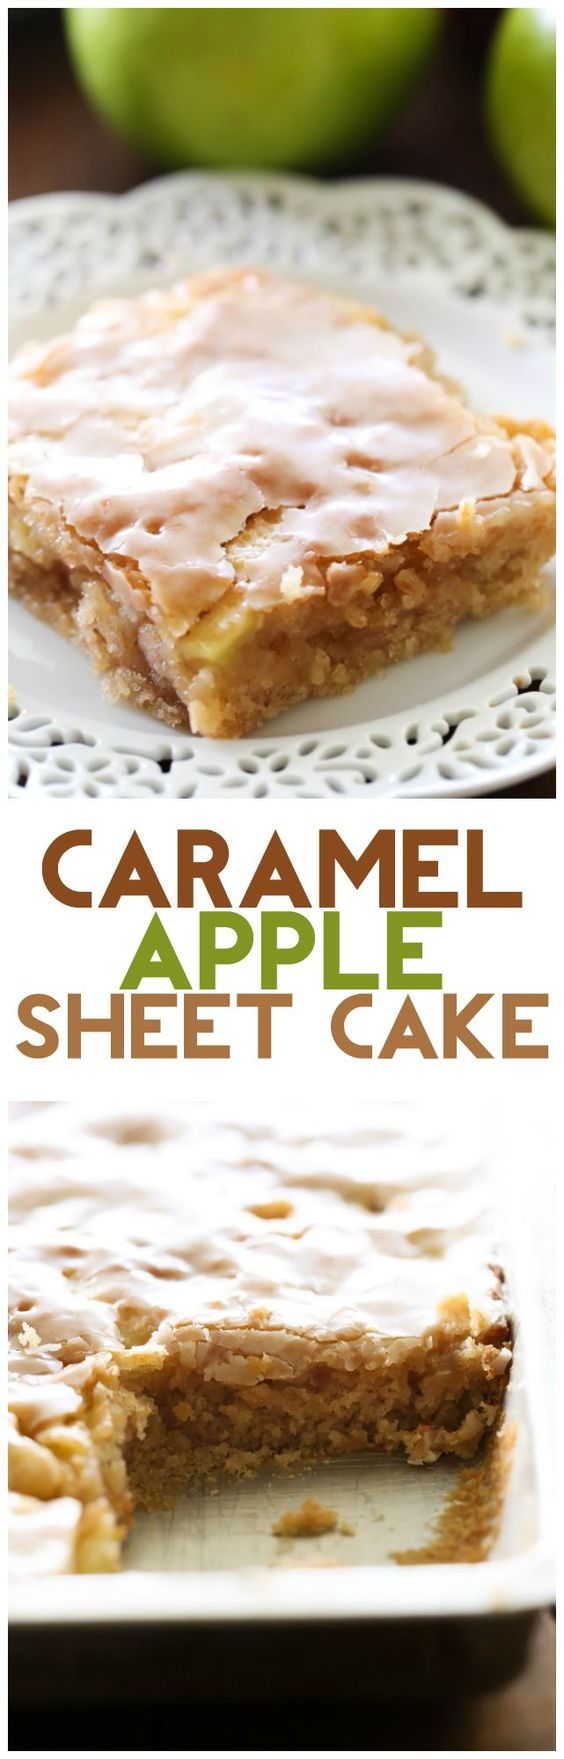 Caramel Apple Sheet Cake: